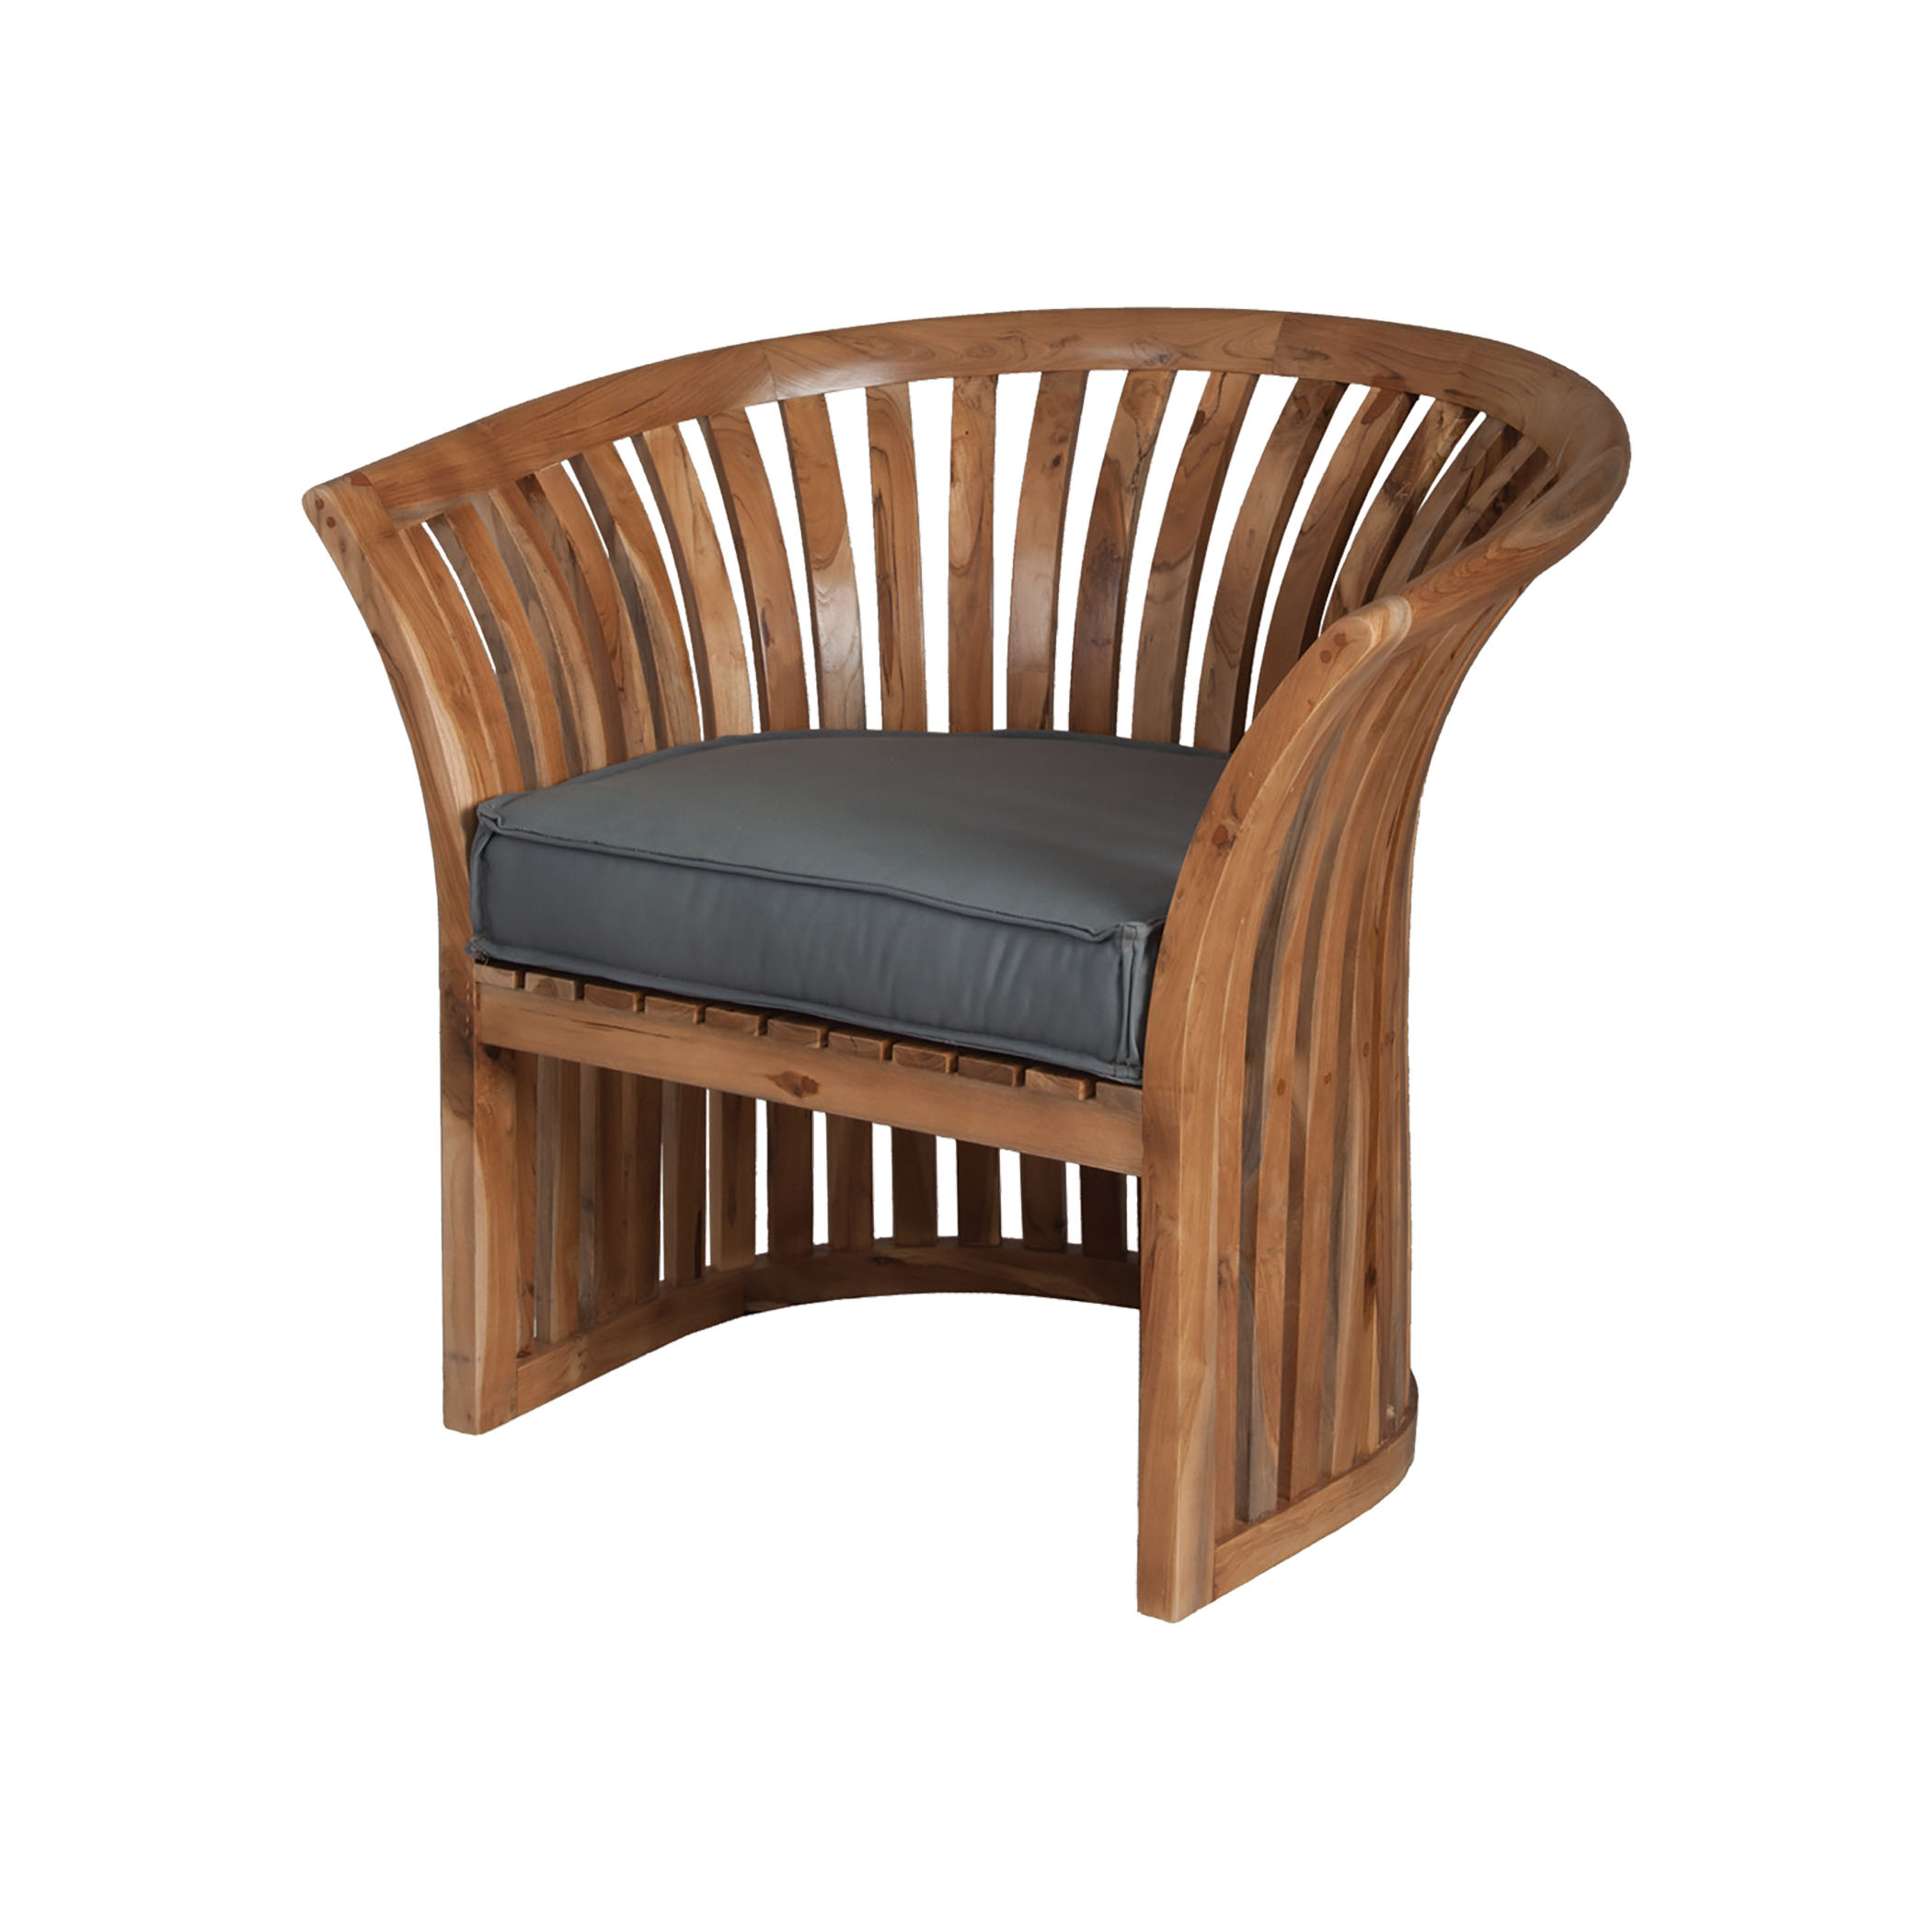 Teak Barrel Chair in Euro Teak Oil 6917001ET | ELK Home